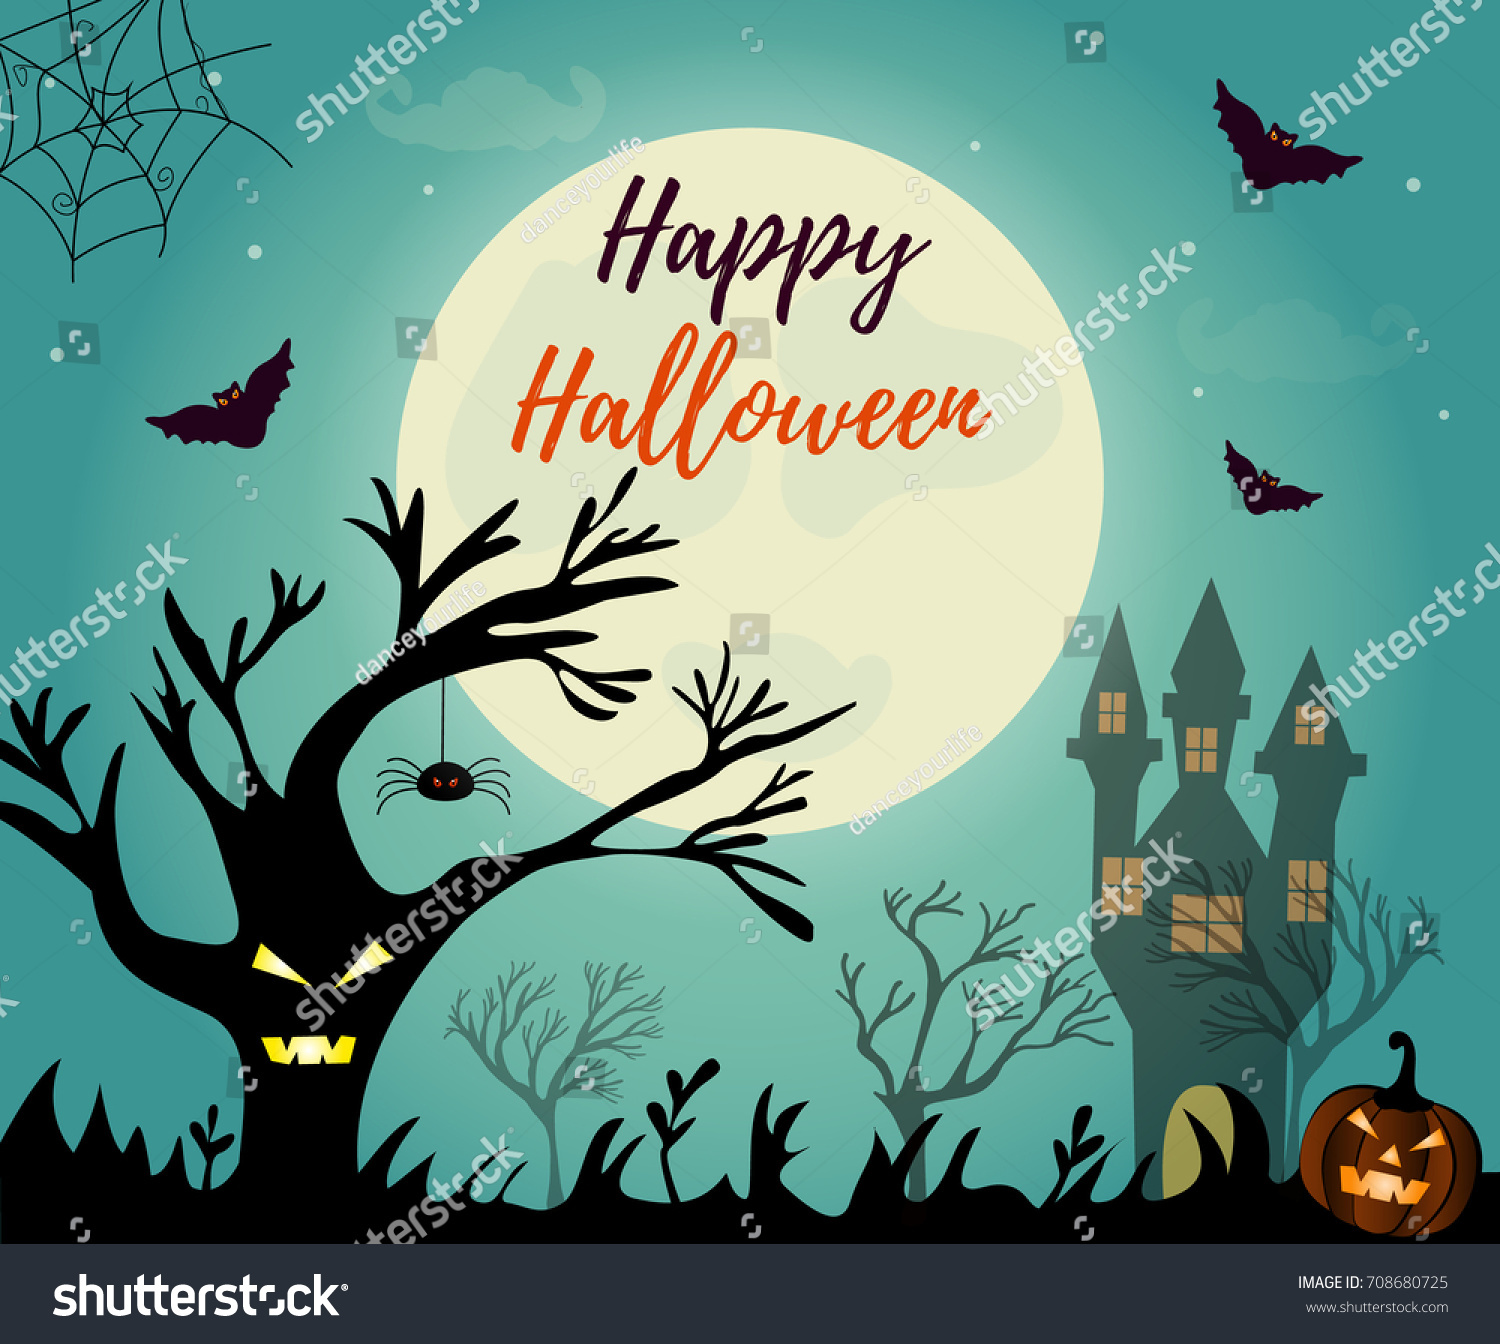 Halloween background with creepy house, scary tree and pumpkin ...